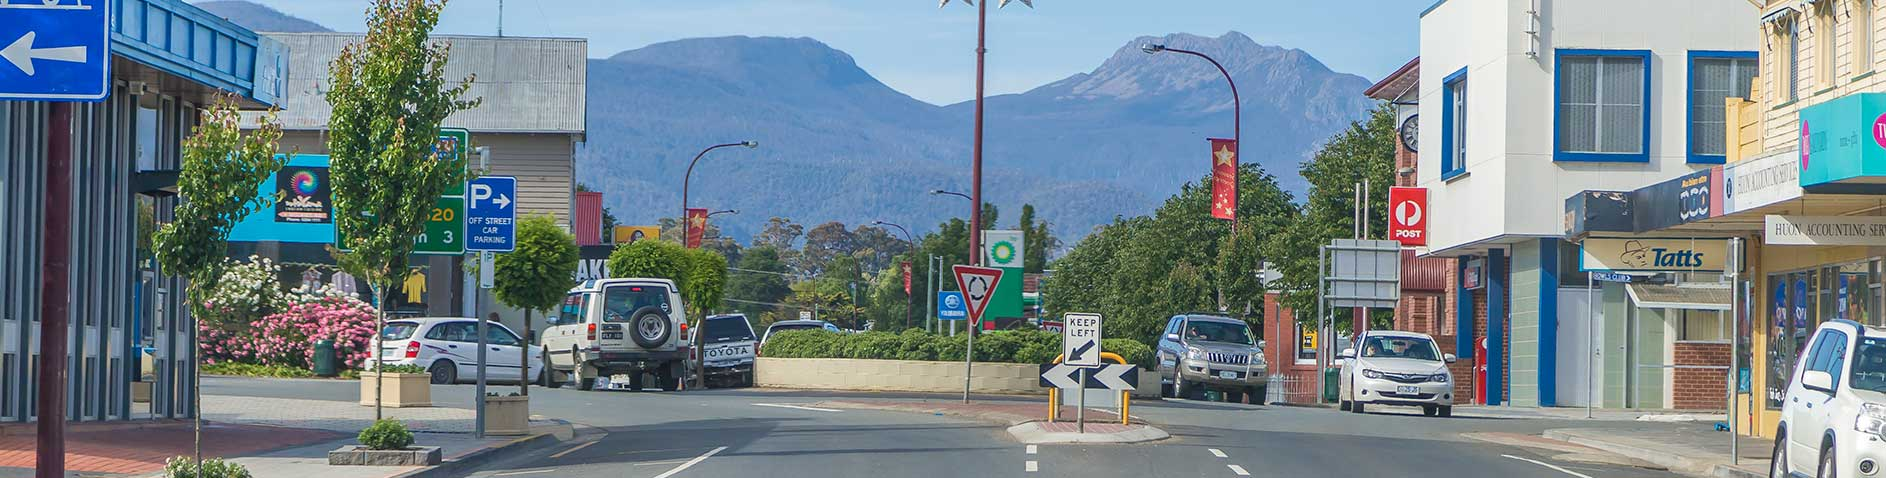 image of main street Huonville